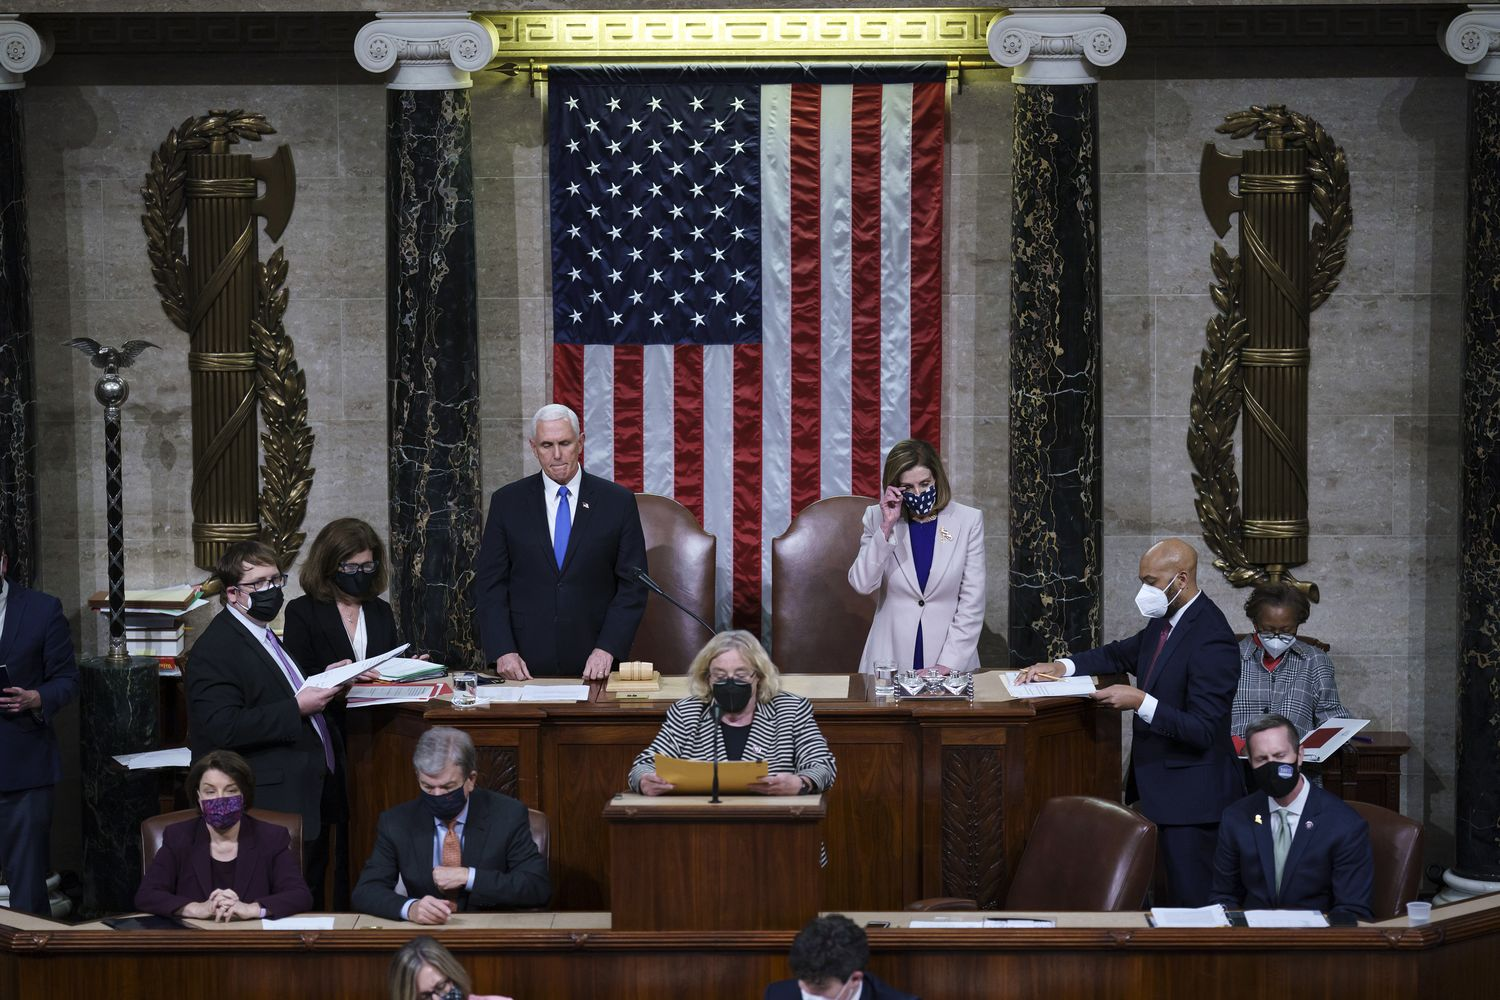 US Vice President Mike Pence (left) and US House Speaker Nancy Pelosi, a Democrat from California, during a joint session of Congress to count the Electoral College votes of the 2020 presidential election in the House Chamber in Washington DC on Thursday. Joe Biden was formally recognised by Congress as the next US president early Thursday, ending two months of failed challenges by his predecessor, Donald Trump, that exploded into violence at the US Capitol as lawmakers met to ratify the election result. (Photo by AP/Bloomberg)